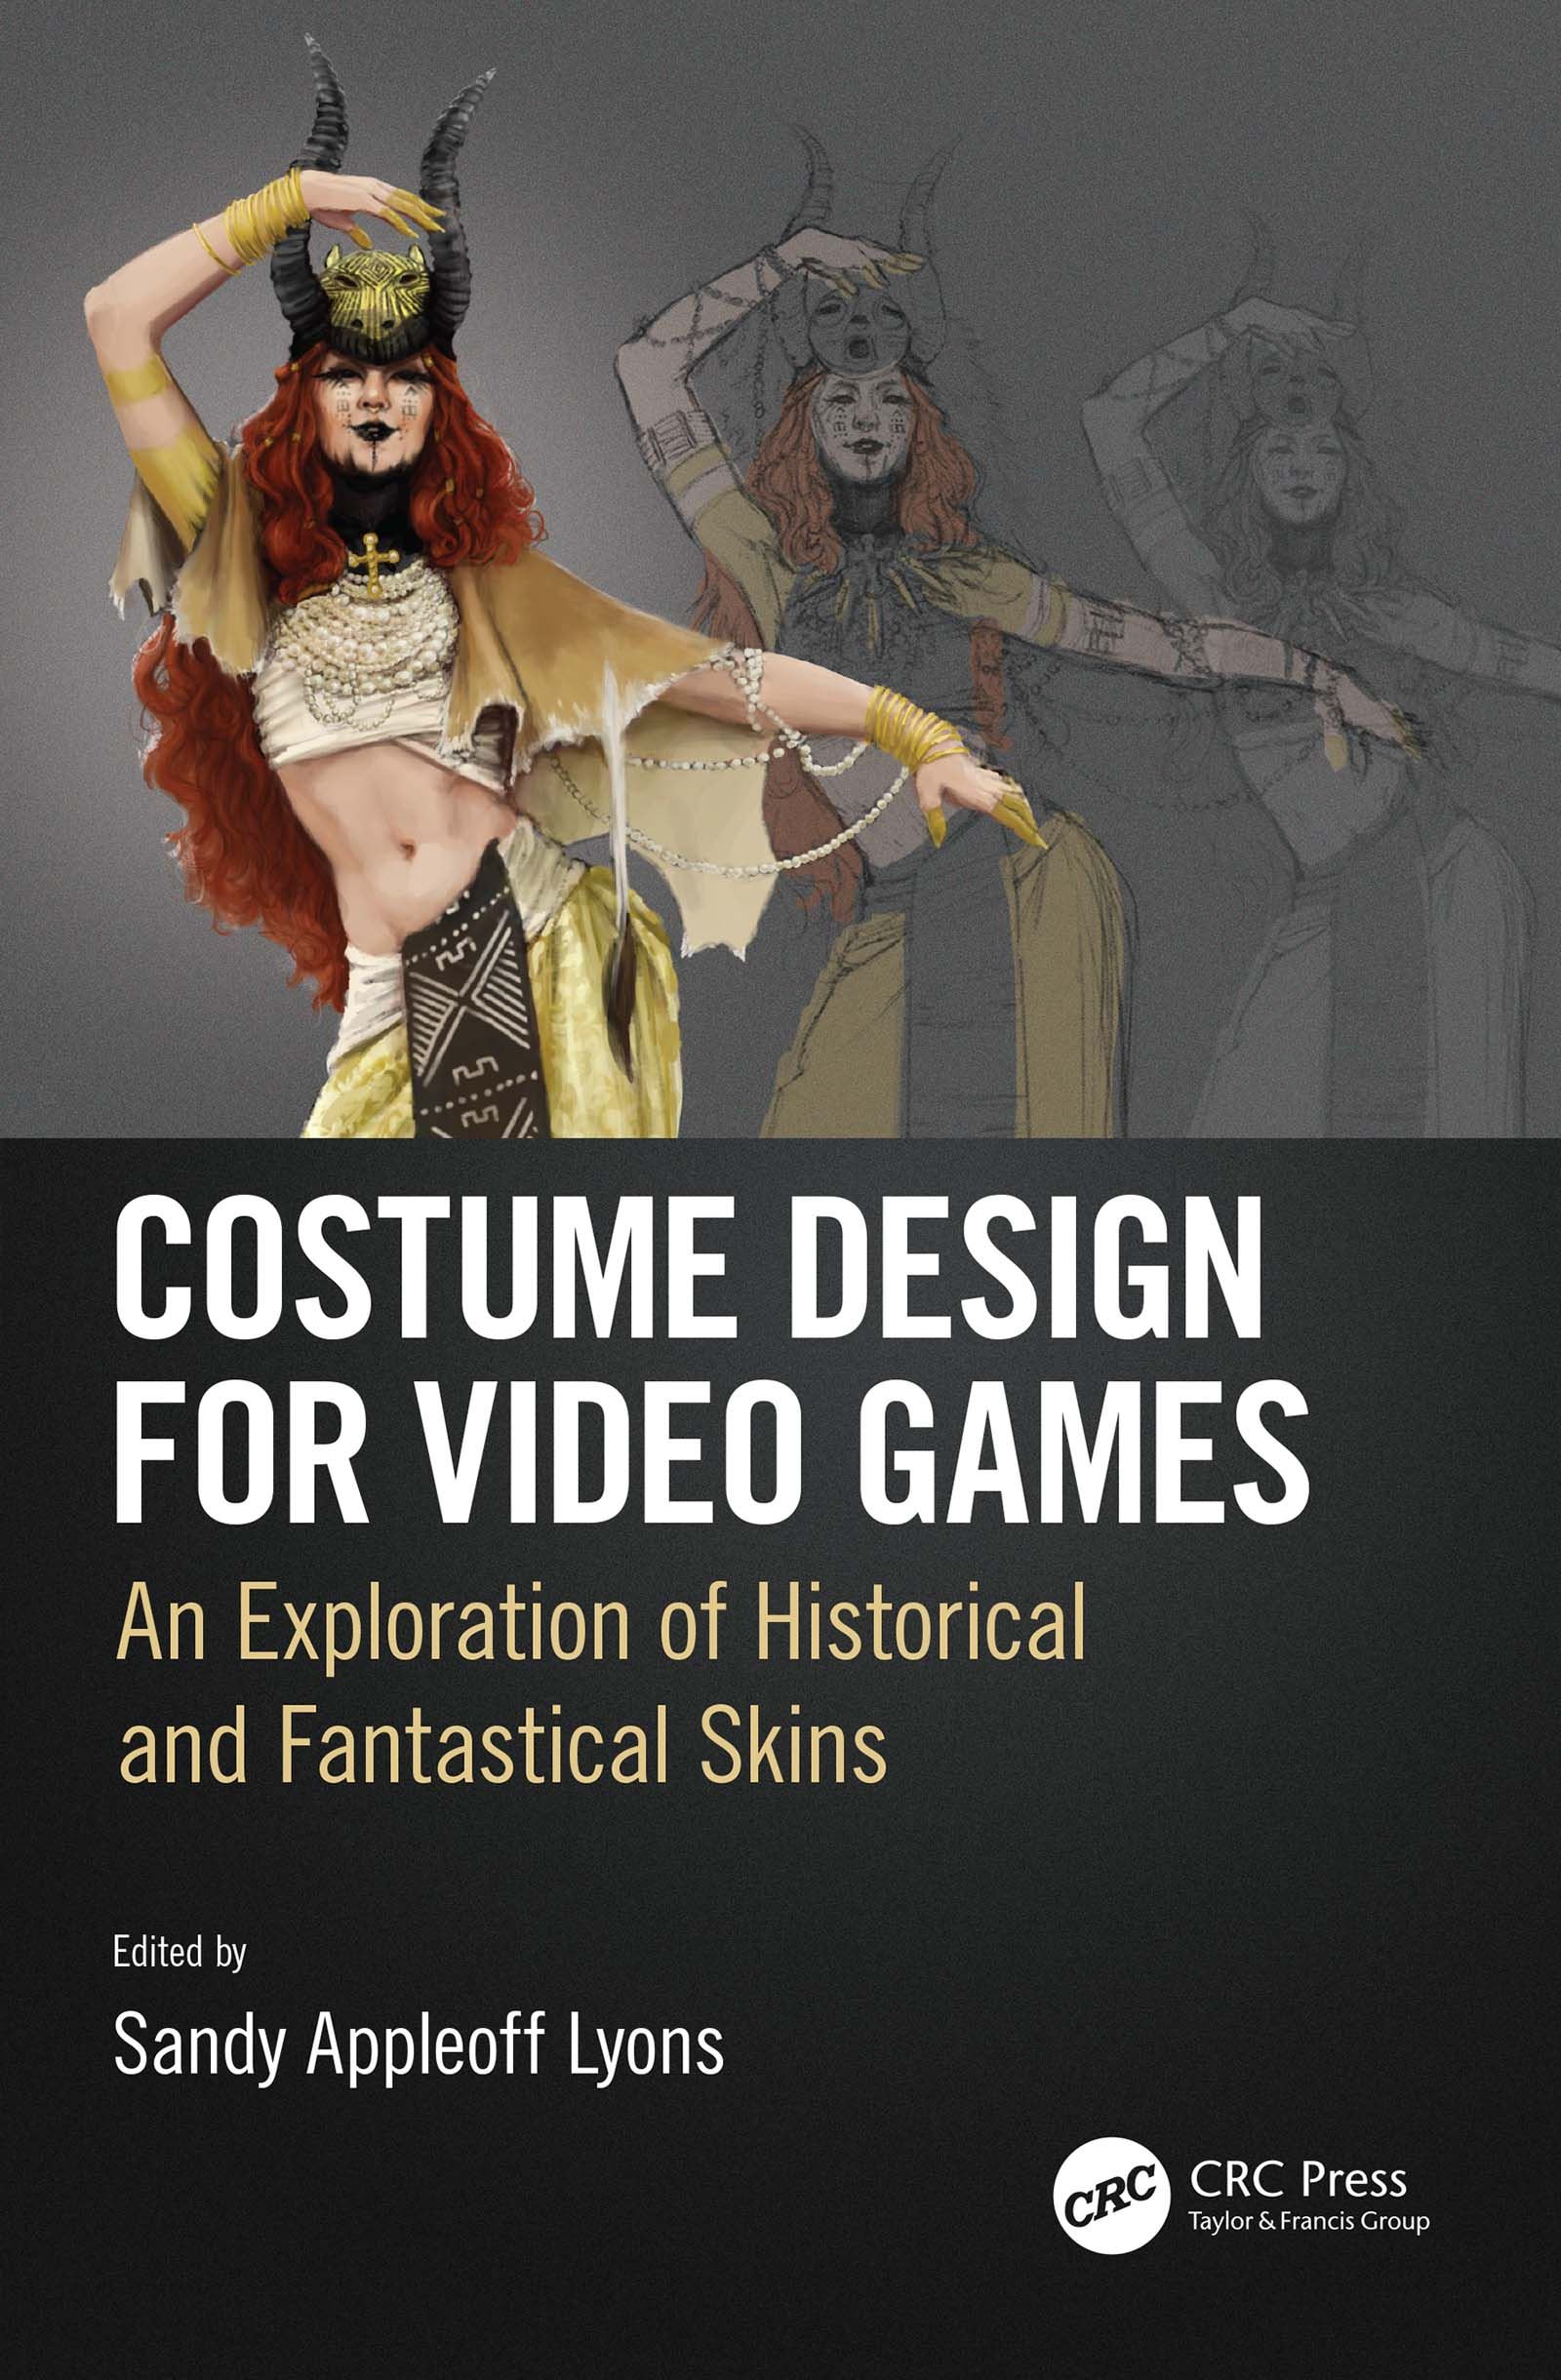 Costume Design for Video Games: An Exploration of Historical and Fantastical Skins book cover